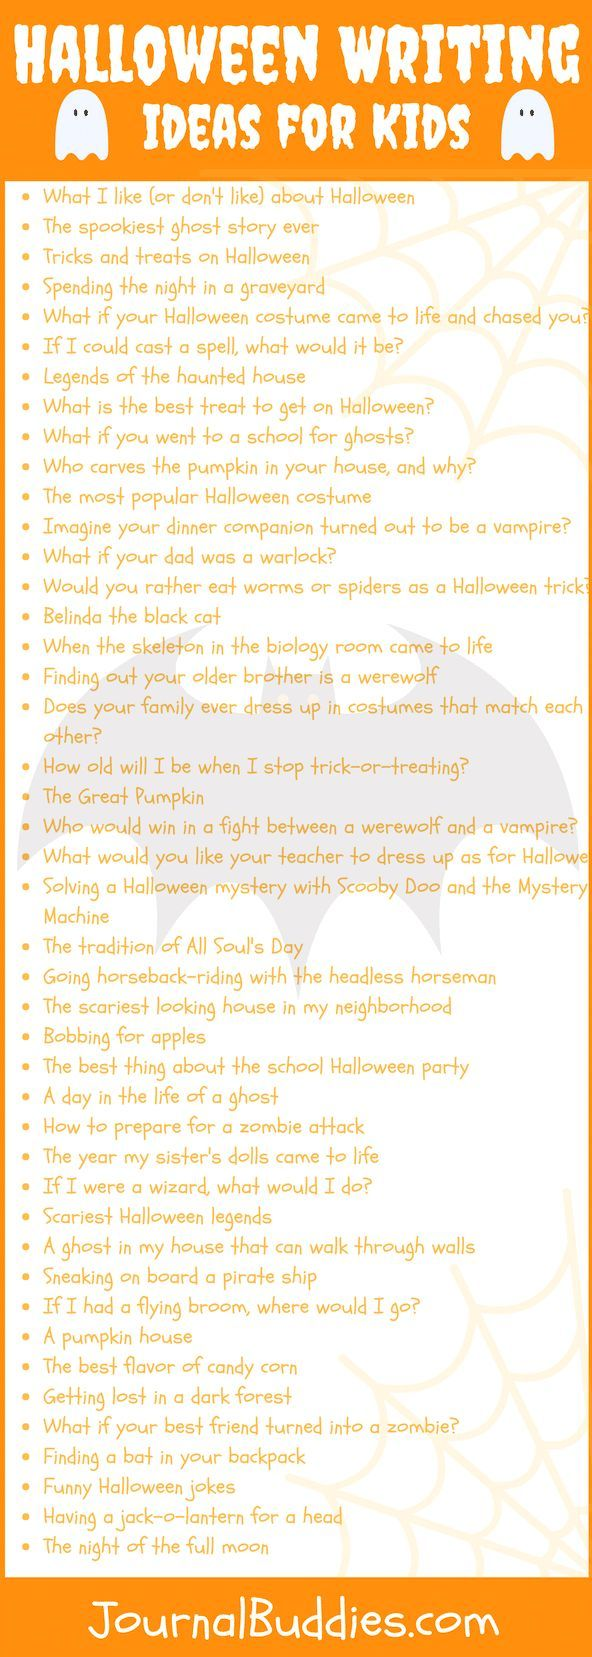 Halloween is on the minds of your elementary students. Go ahead! exploit their excitement and connect it to their elementary writing skill development. Besides, it's likely that elements of the season have been showing up in their school work already, so why not give them some specific elementary writing prompts for the spooky occasion?